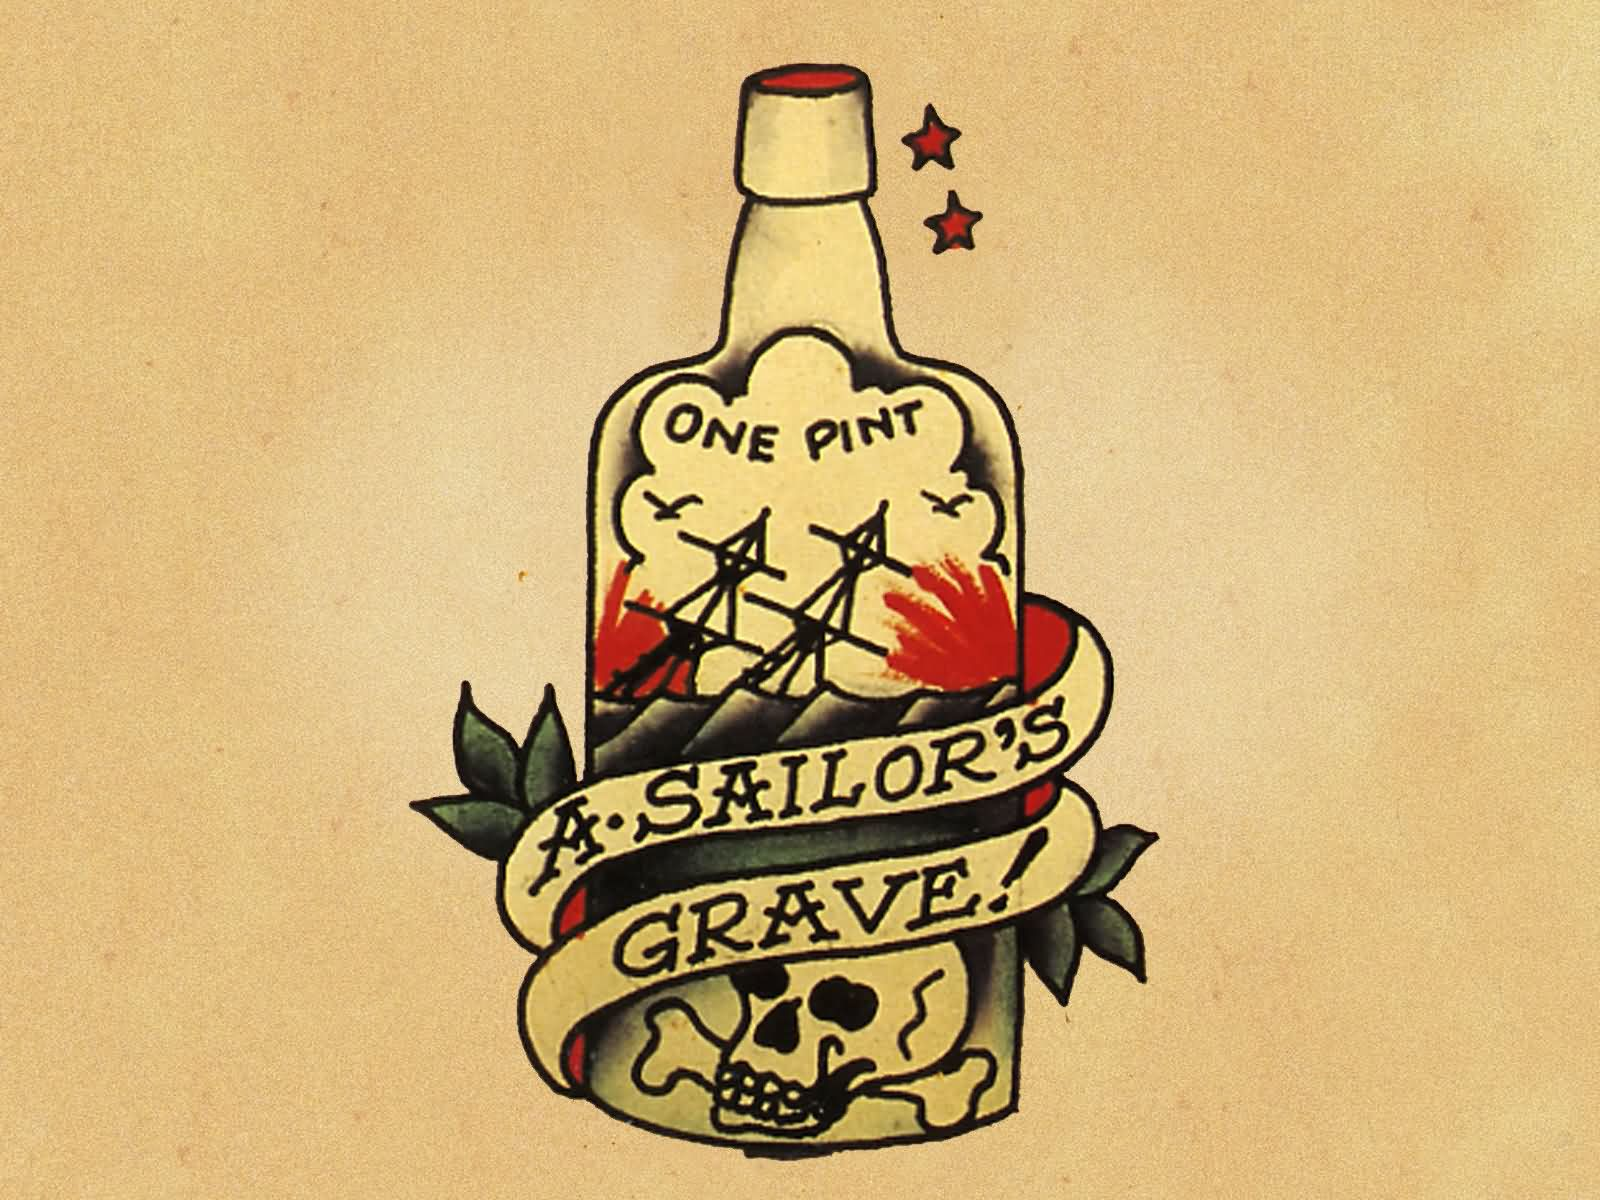 Sailor Grave Old School Design